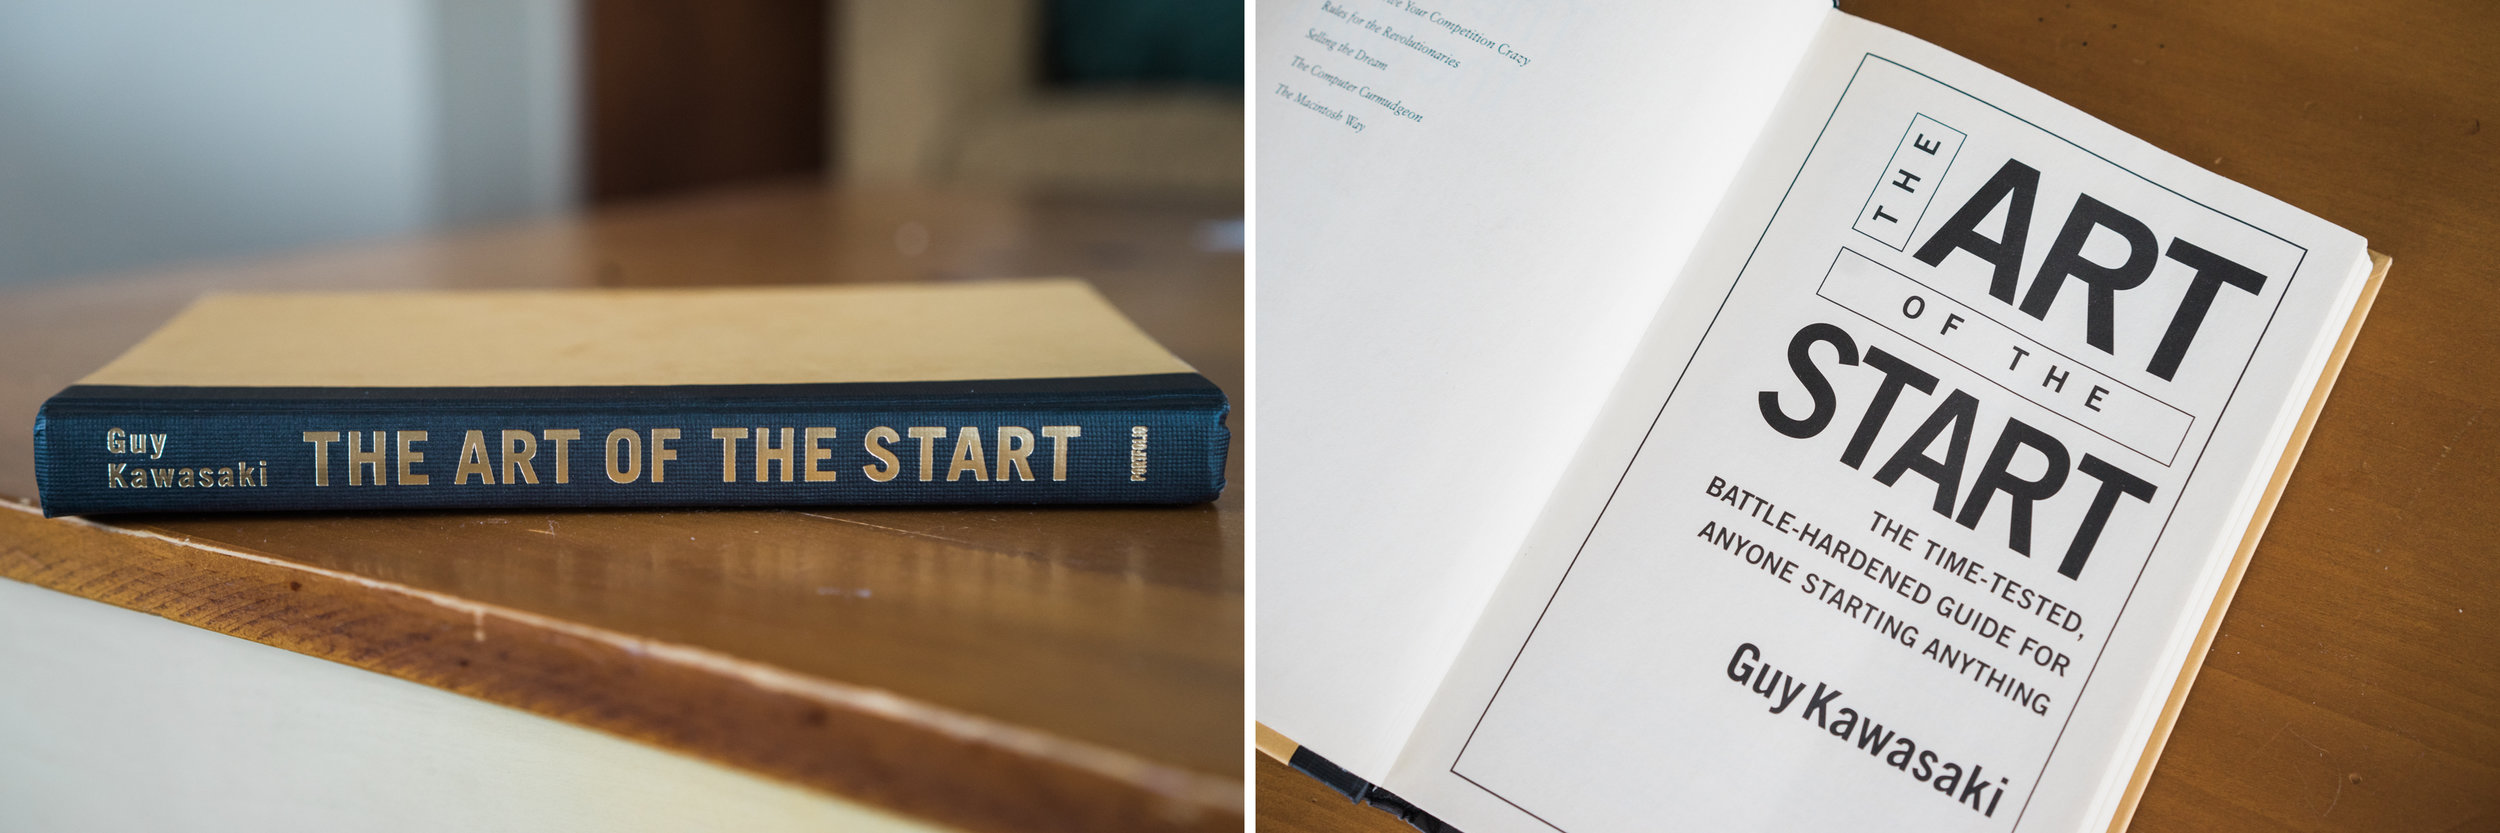 Image shows book The Art of the Start